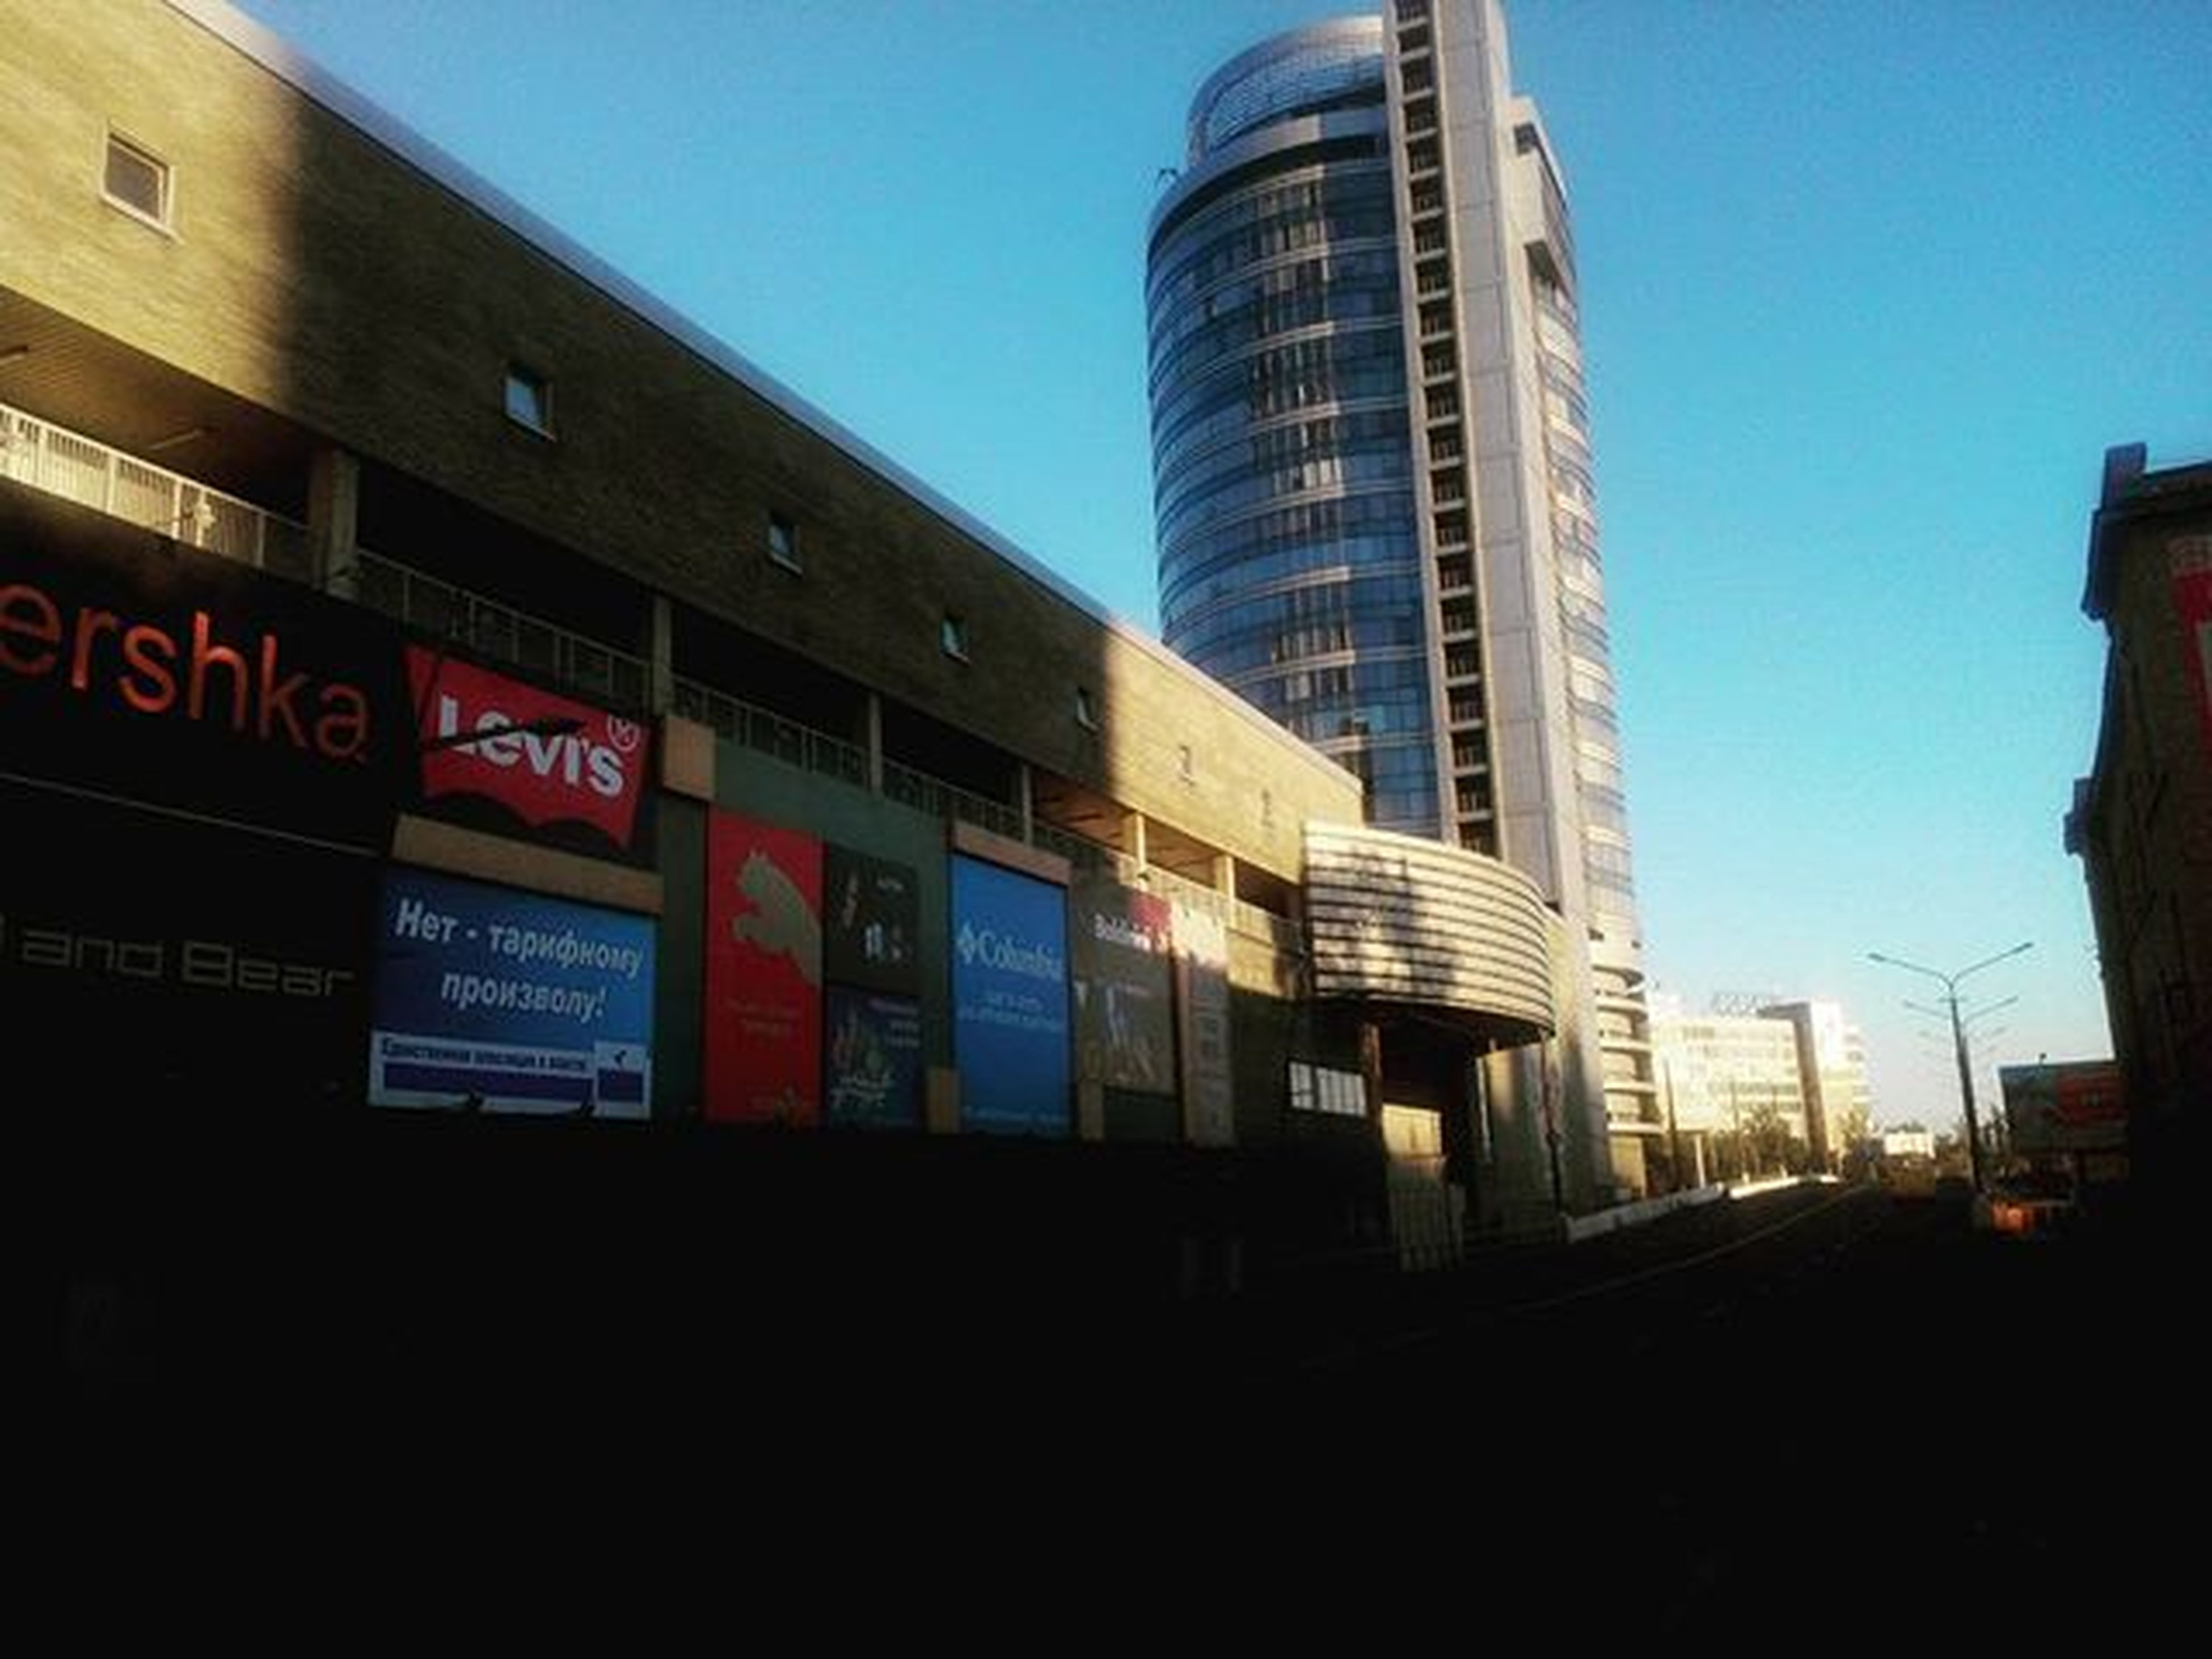 architecture, built structure, building exterior, clear sky, city, blue, modern, text, communication, low angle view, office building, western script, tower, skyscraper, building, tall - high, sky, city life, outdoors, no people